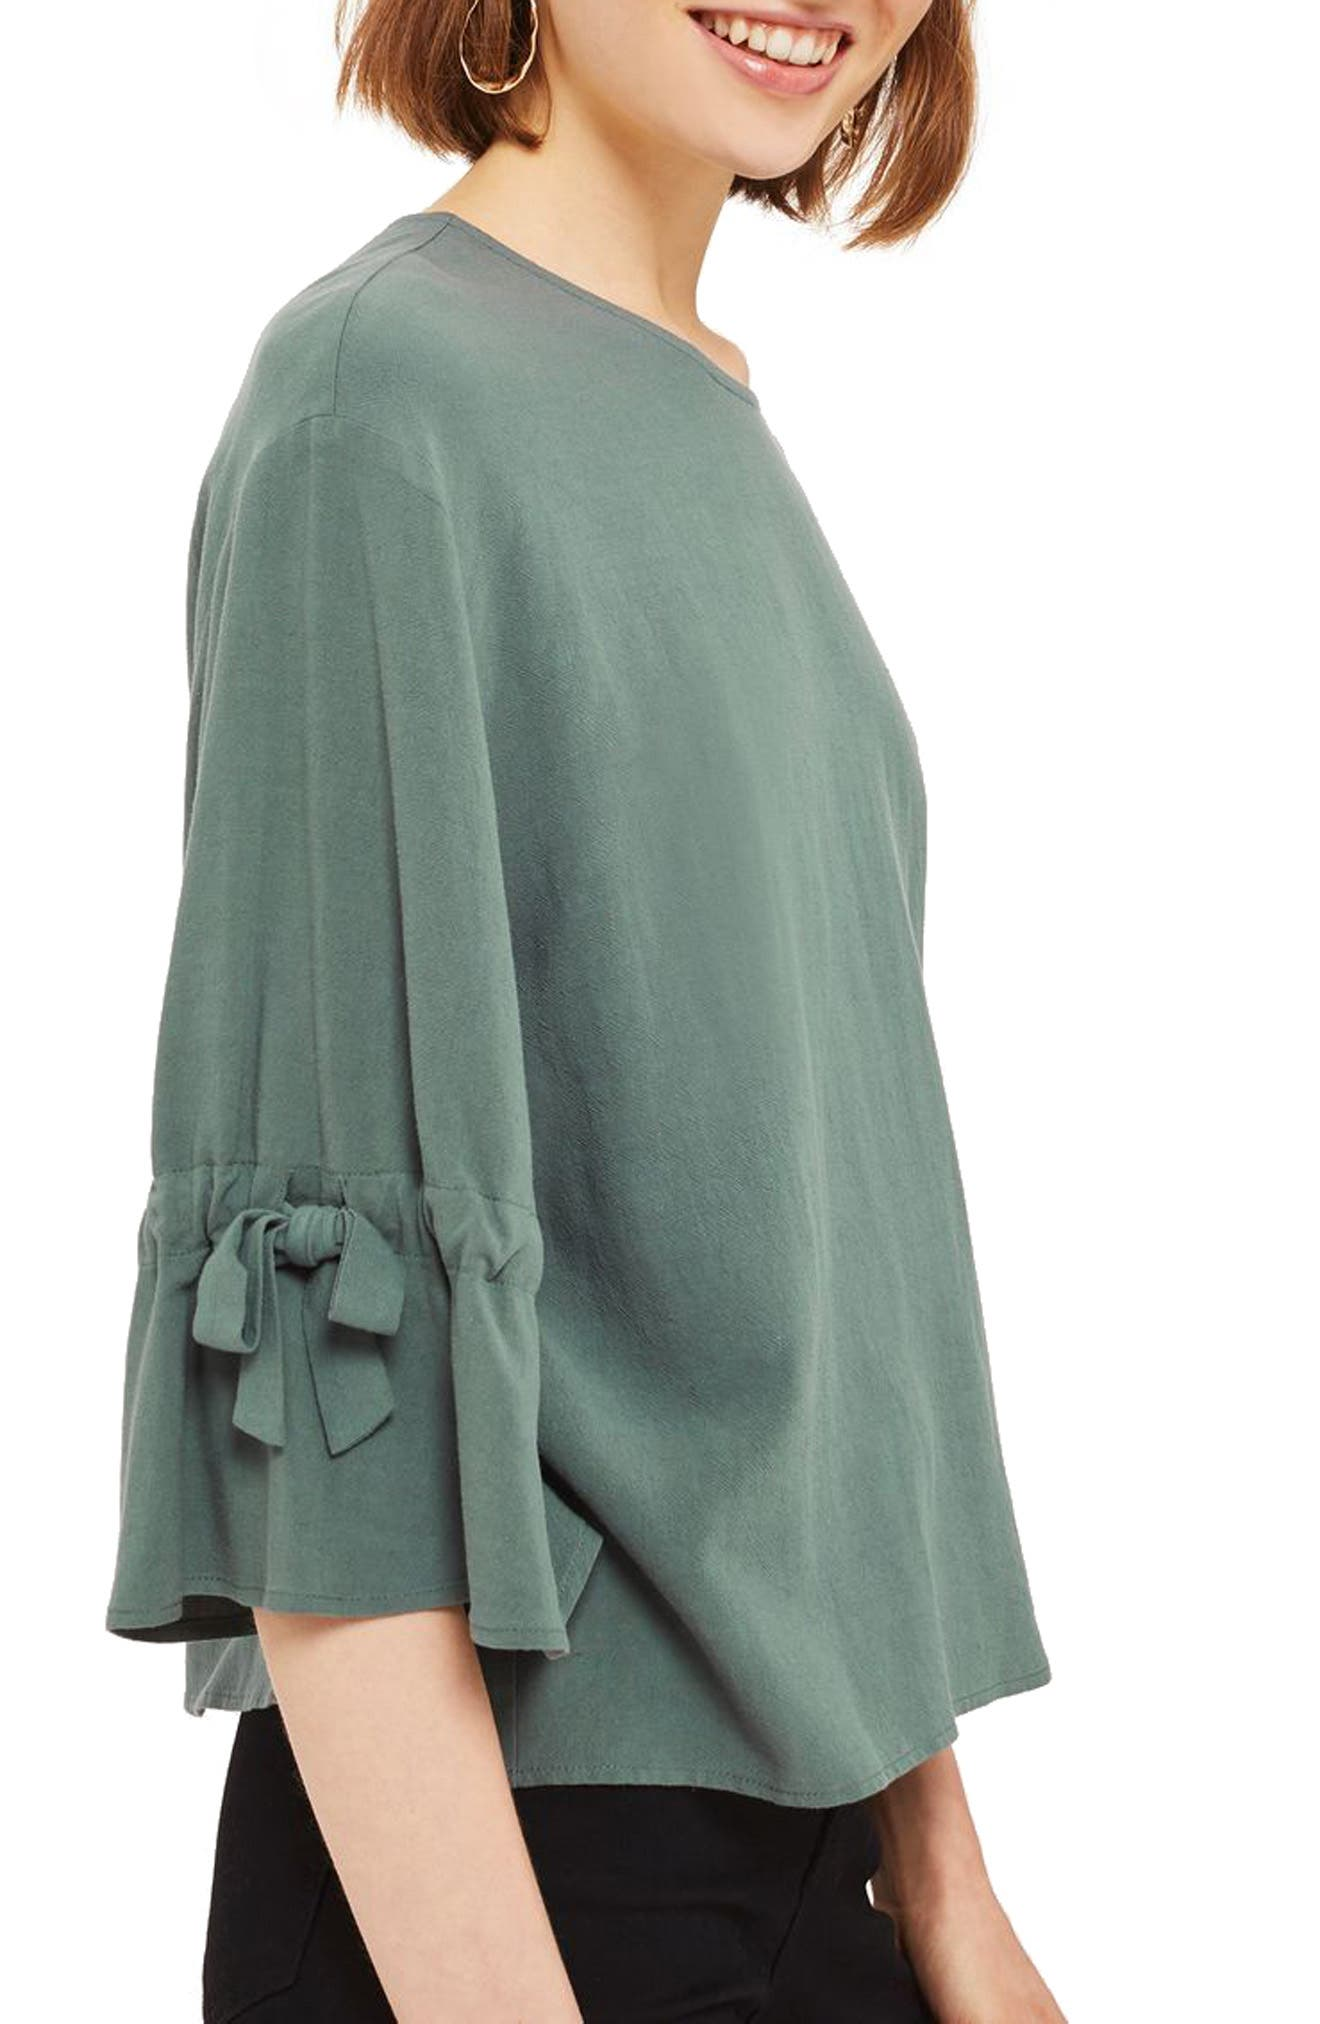 Topshop Molly Tie Sleeve Blouse